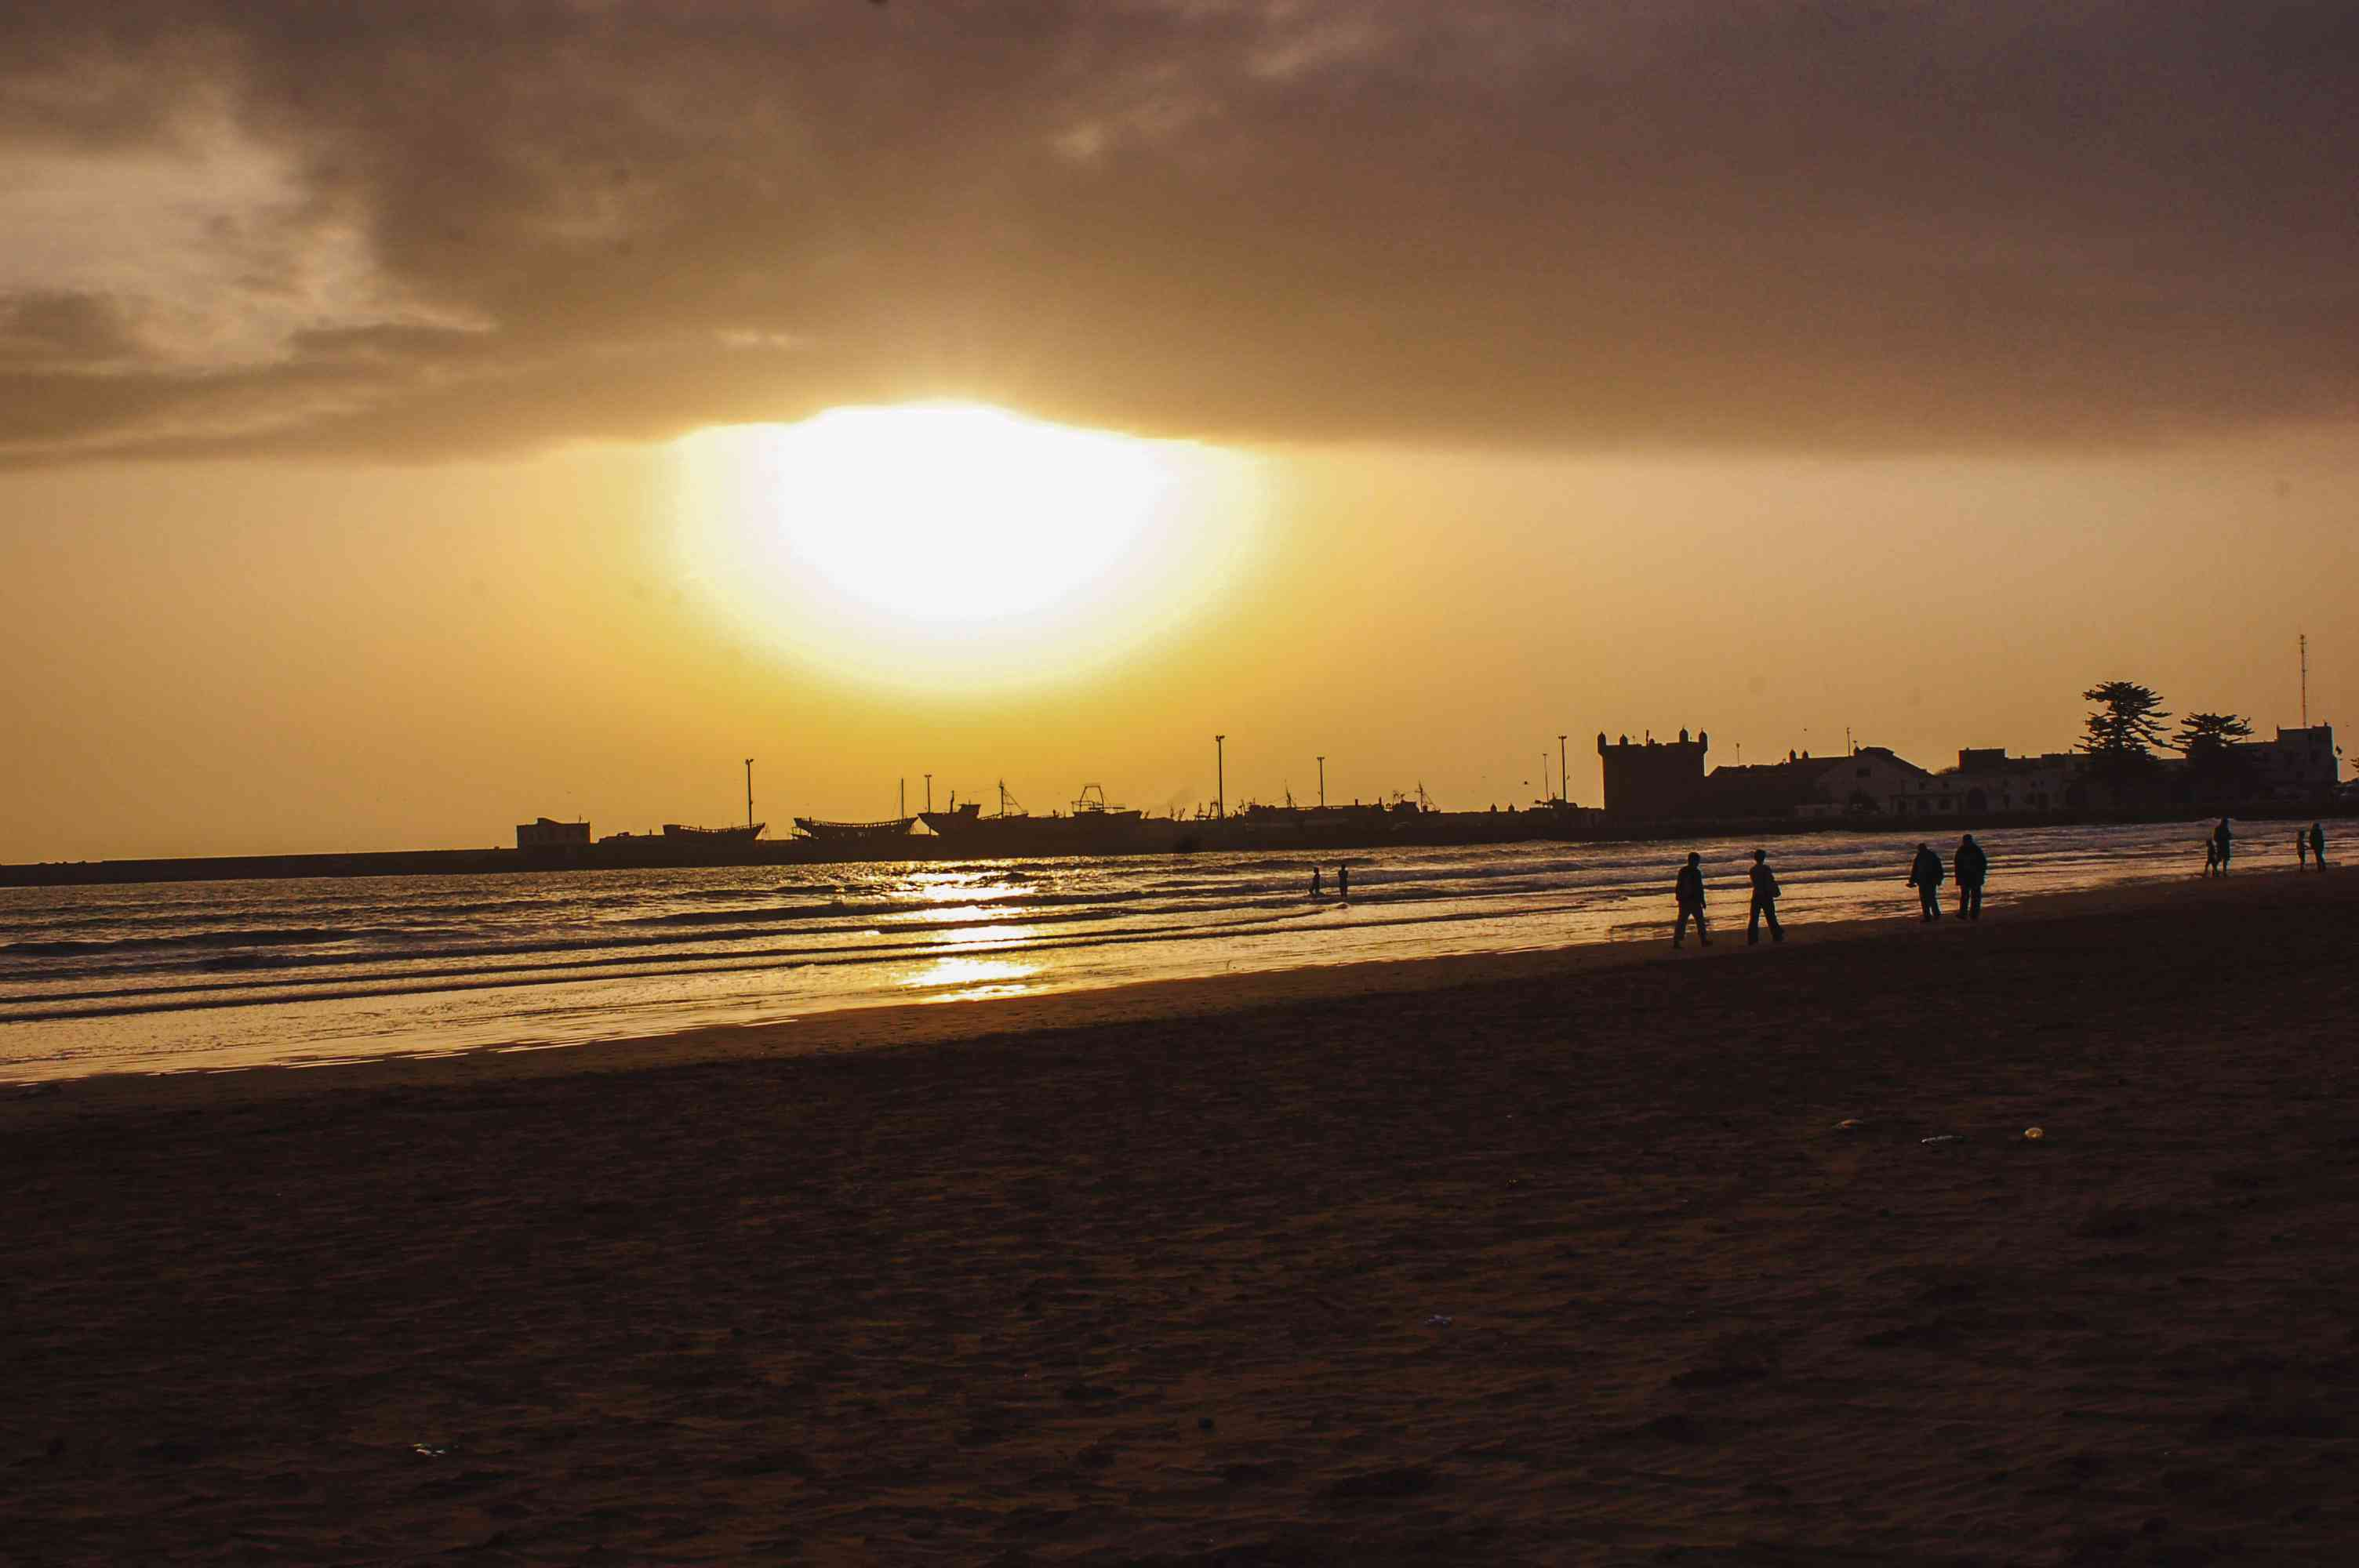 A moroccan beach during sunset